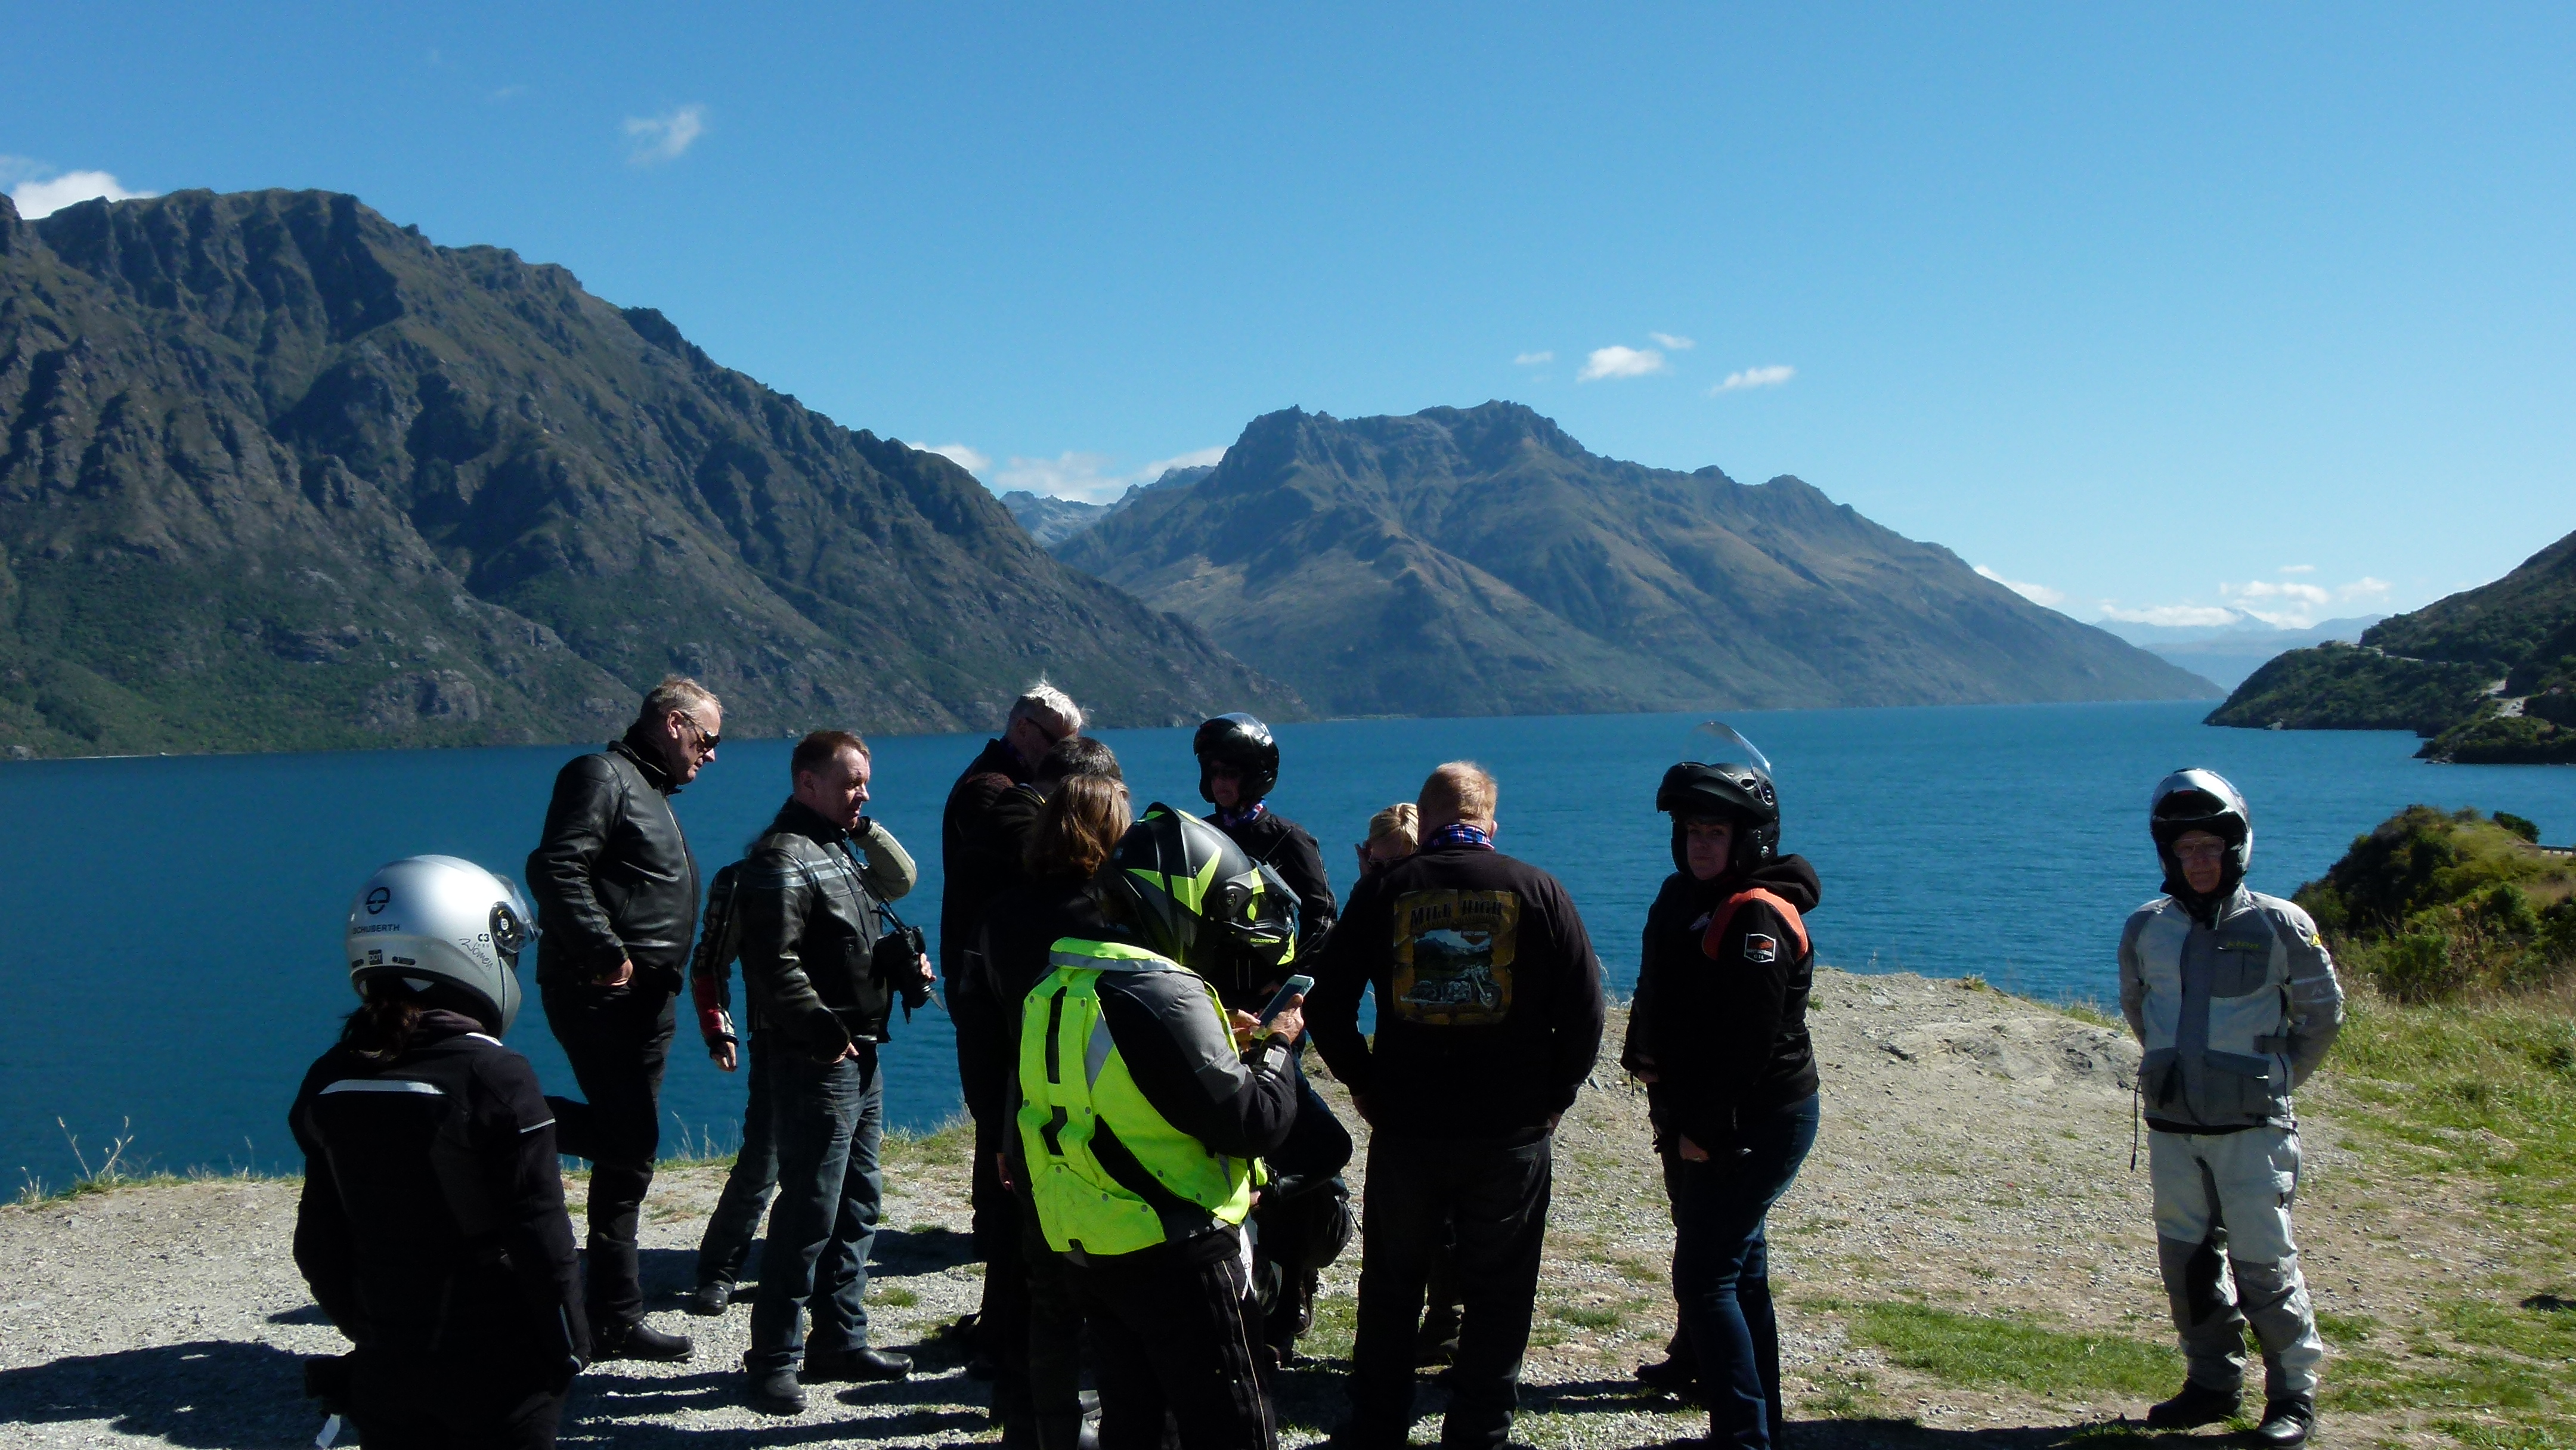 Private Security New Zealand